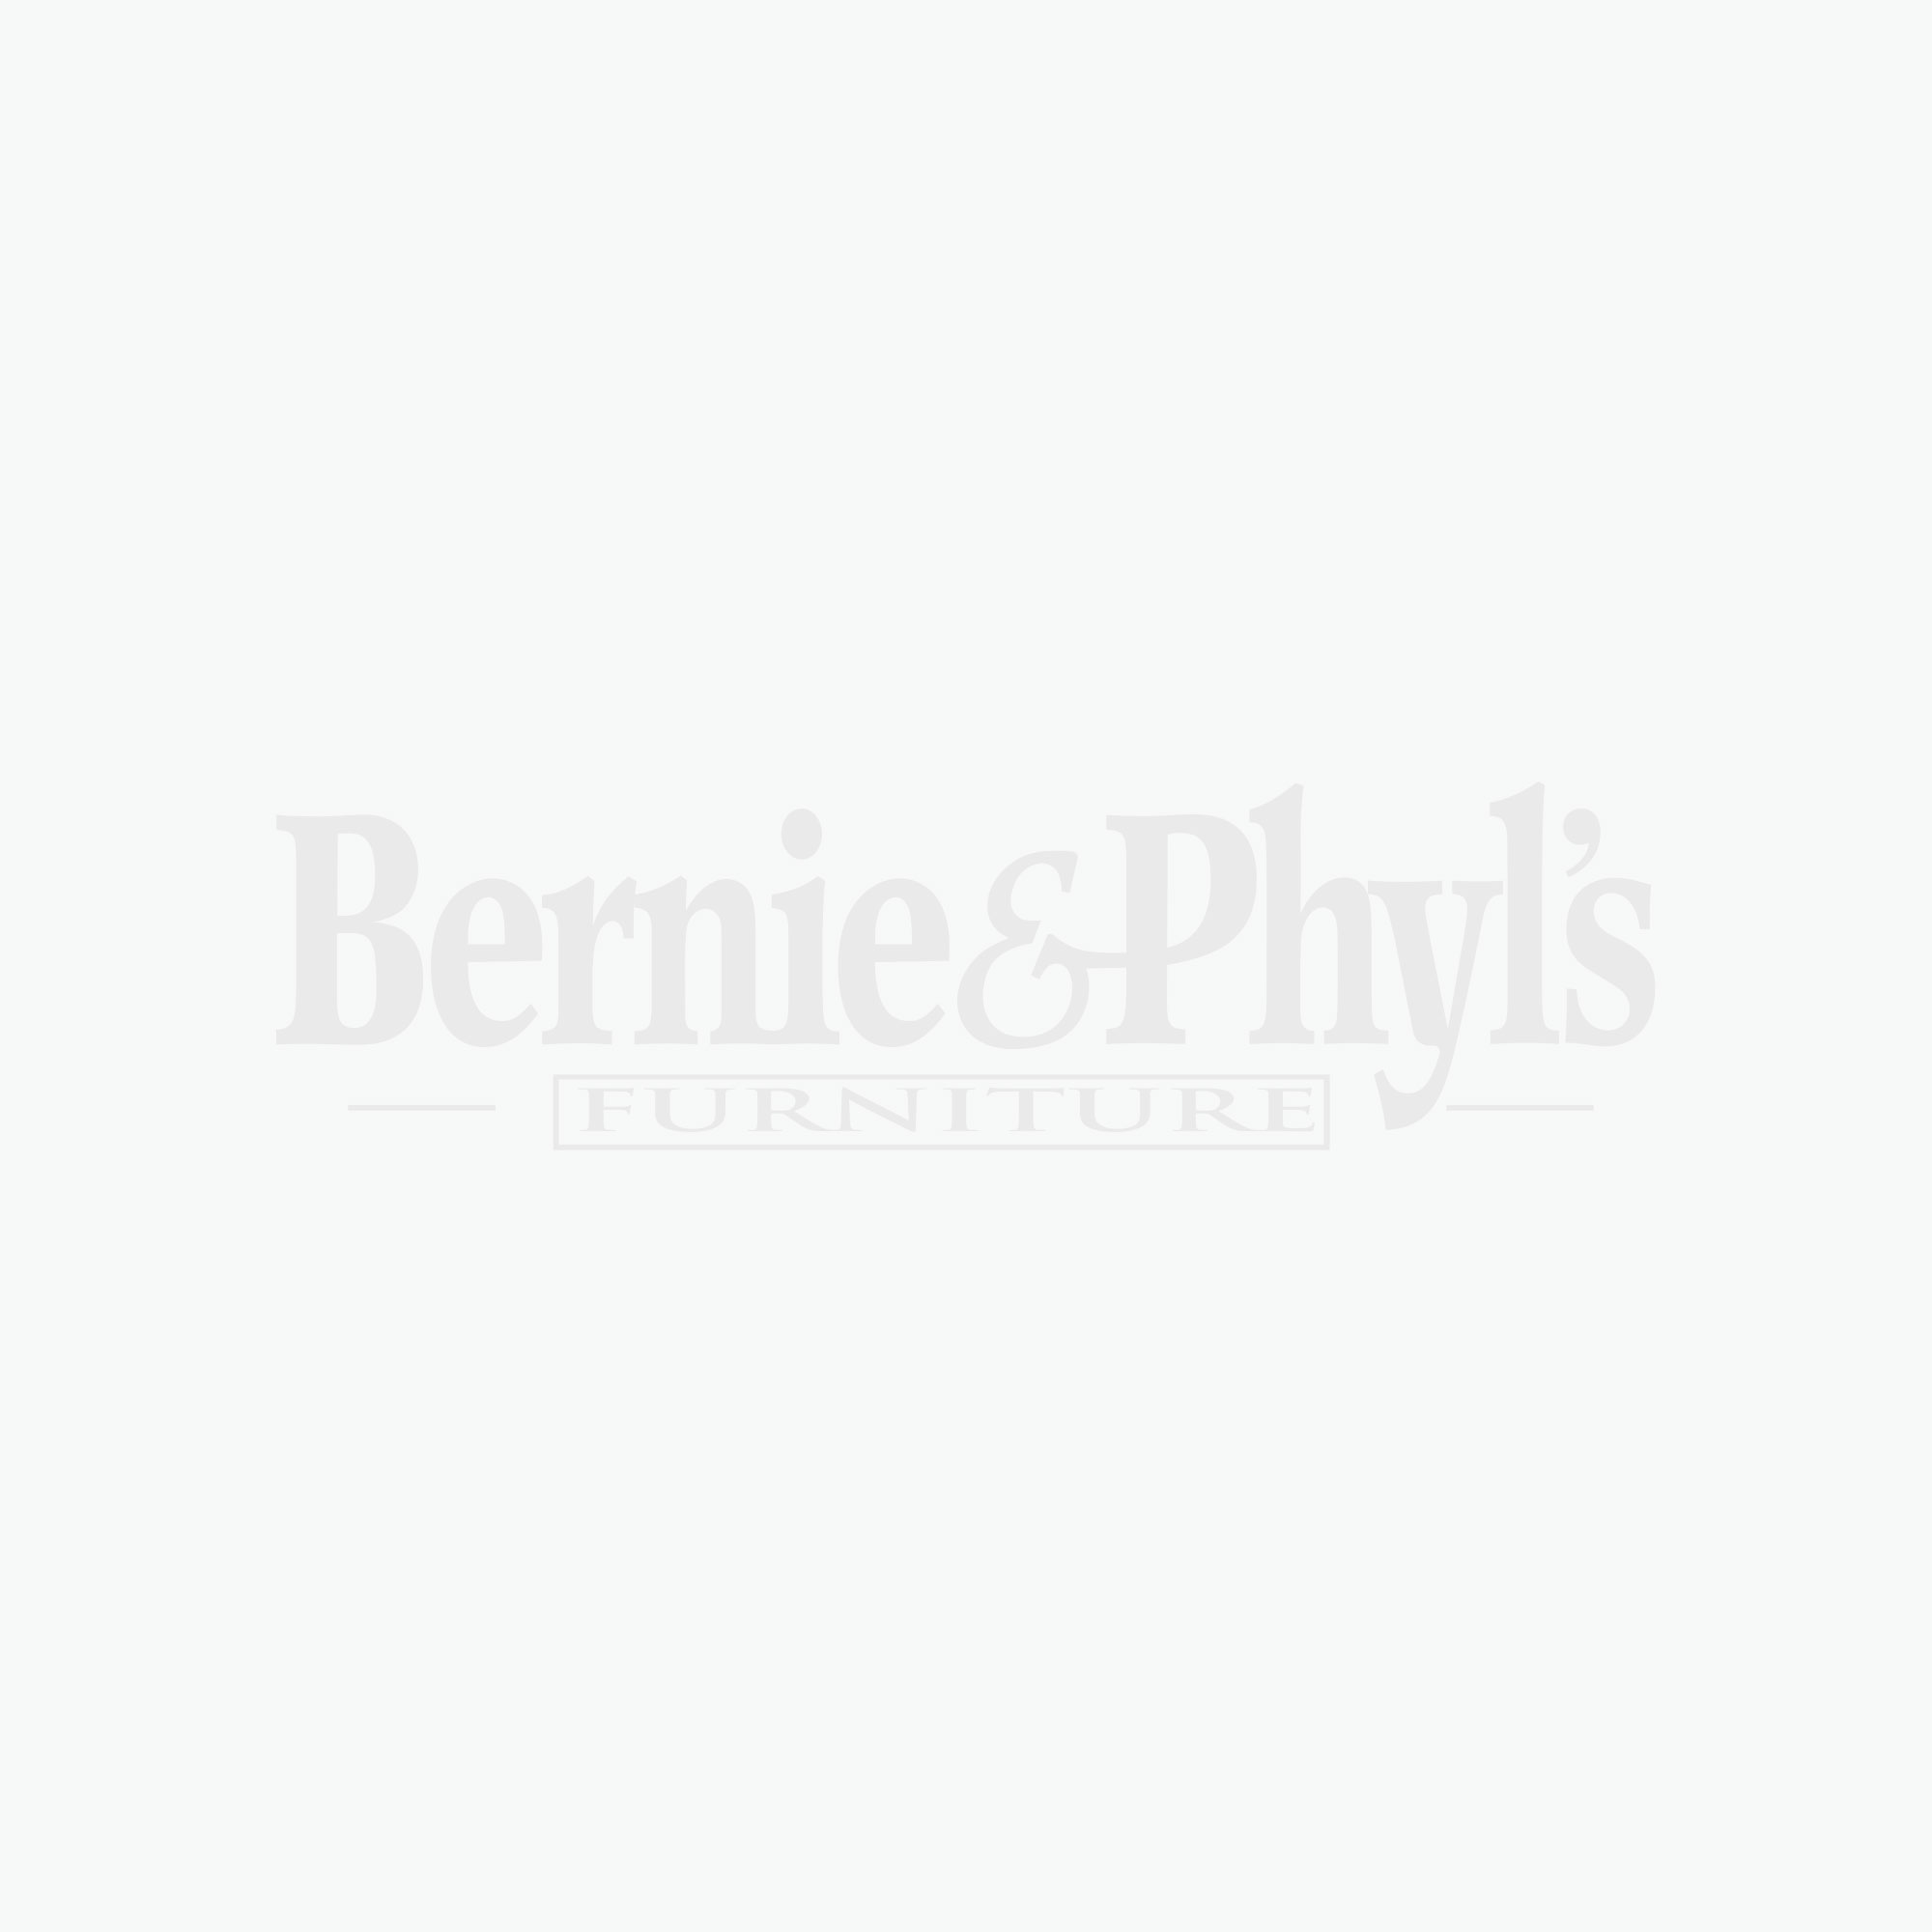 Abington Dining Room Table Bernie Phyl S Furniture By Magnussen Furniture